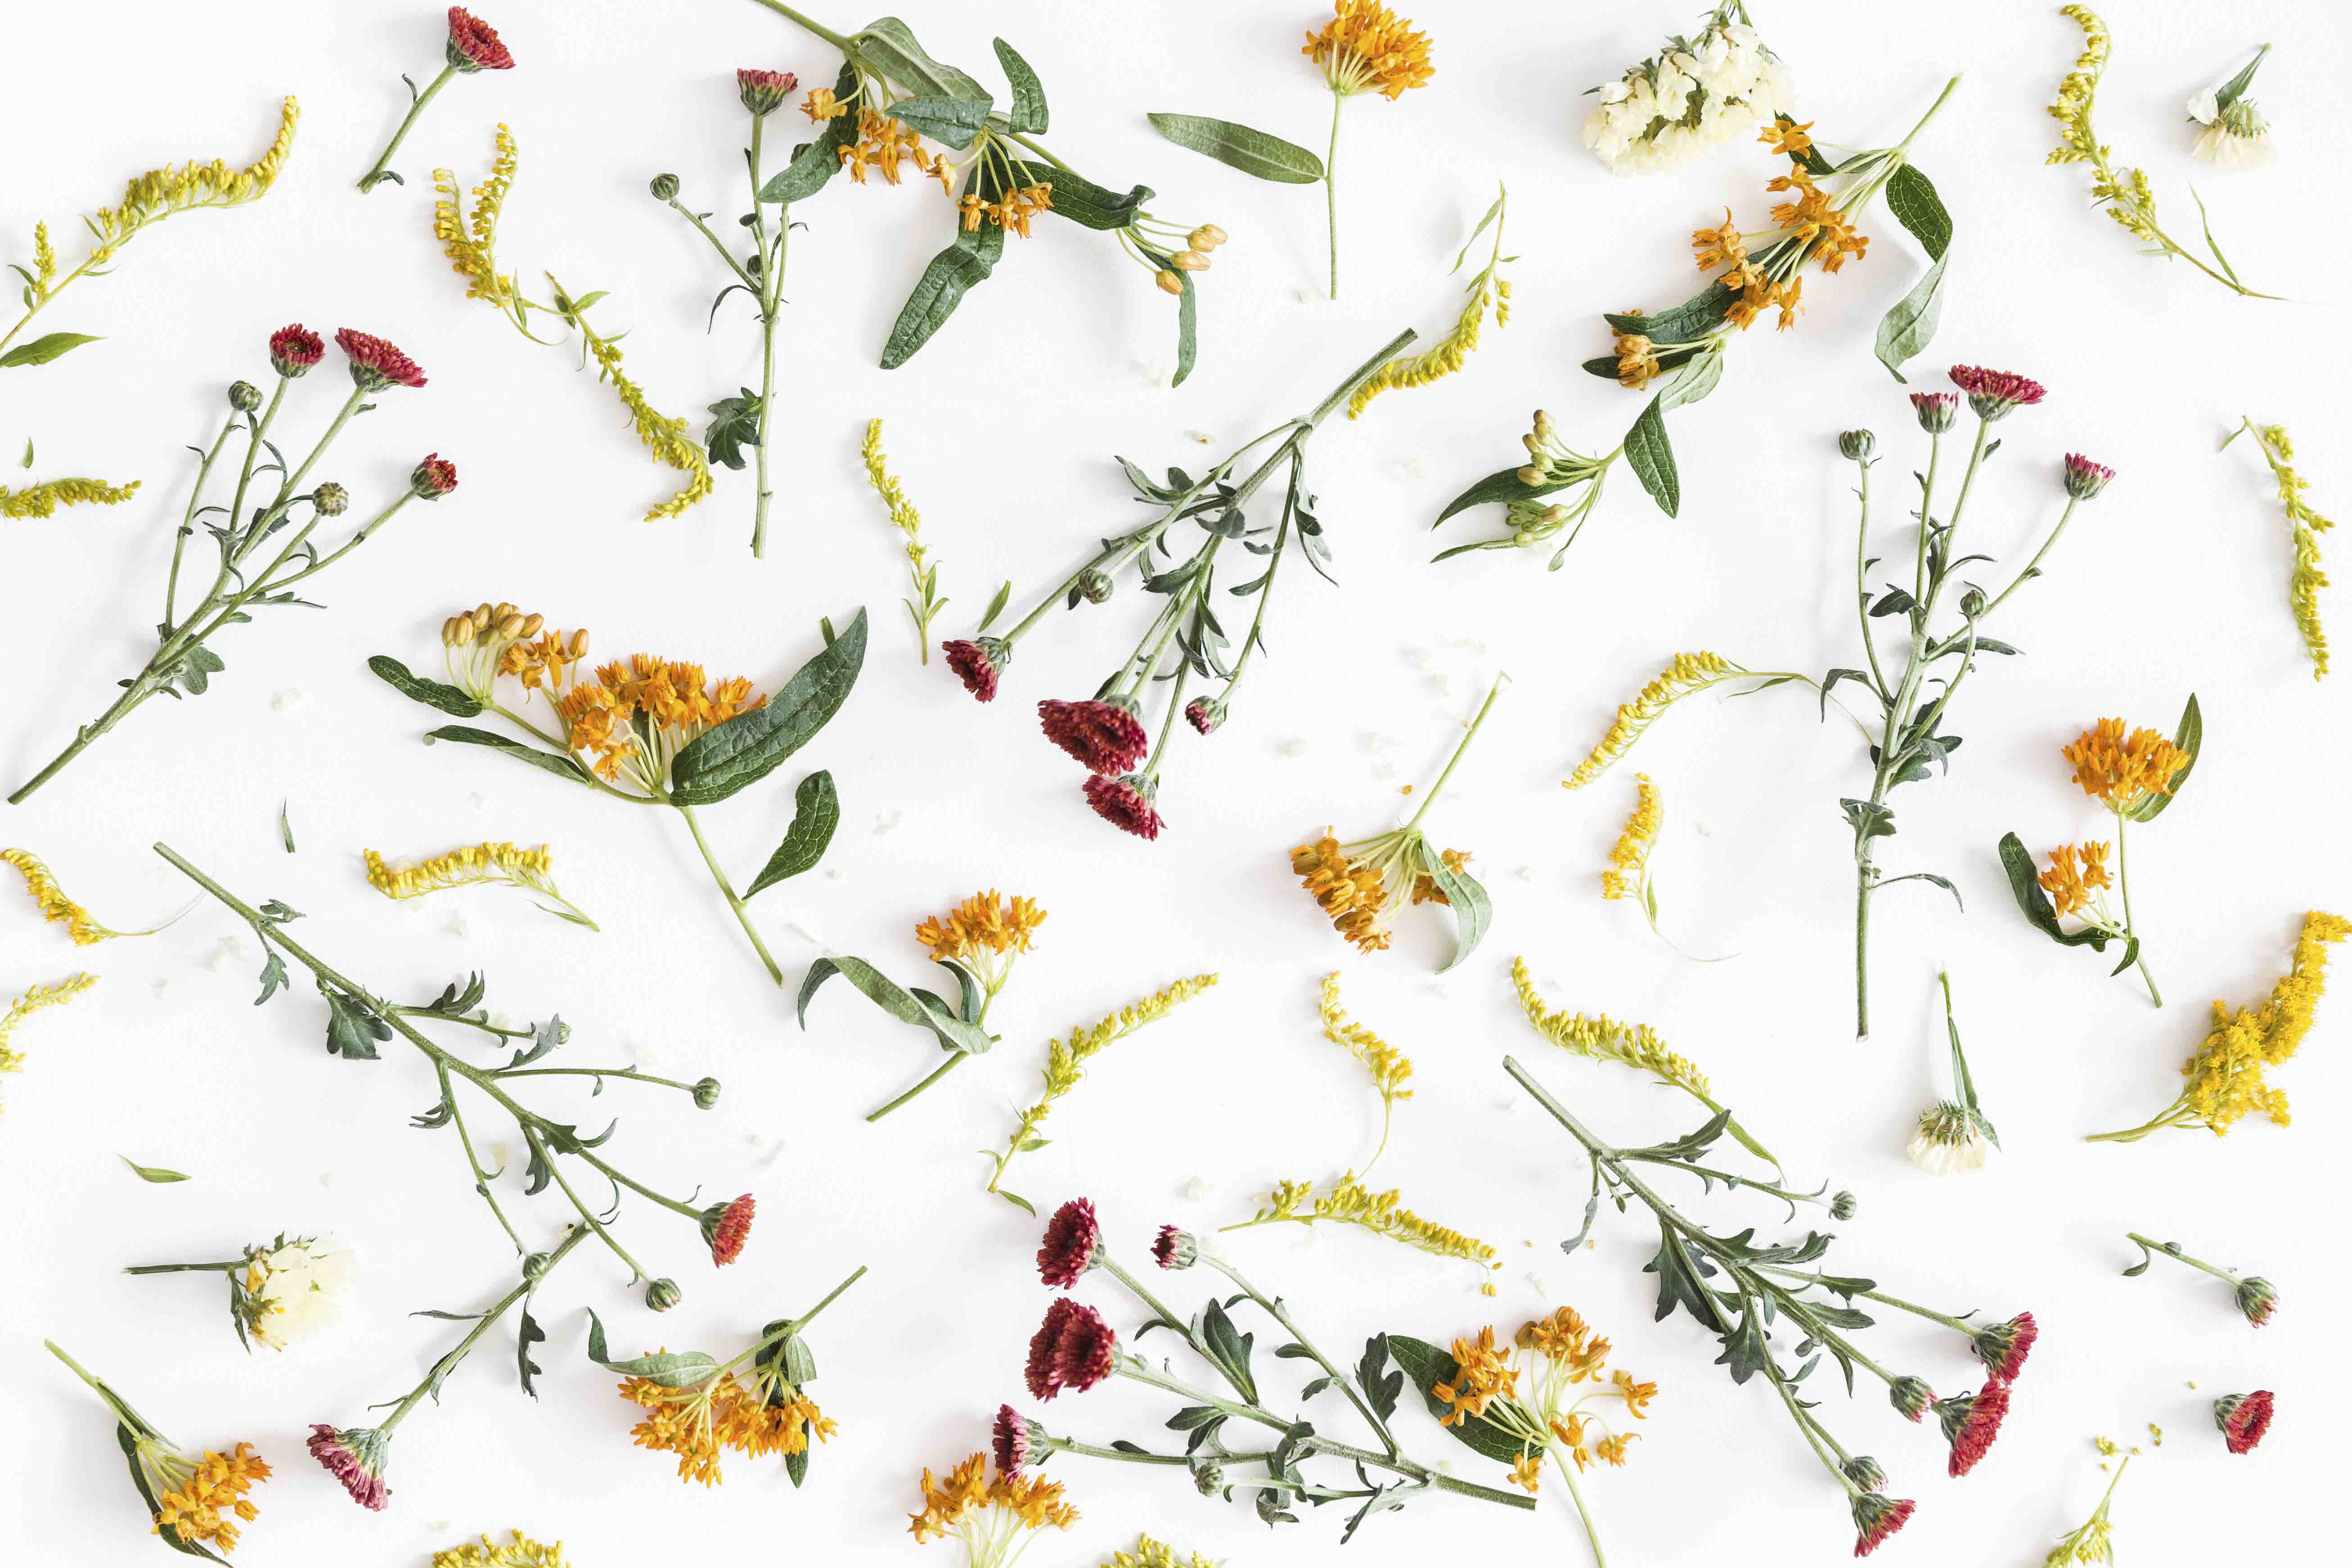 Autumn floral composition. Pattern made of fresh flowers on white background. Autumn, fall concept. Flat lay, top view